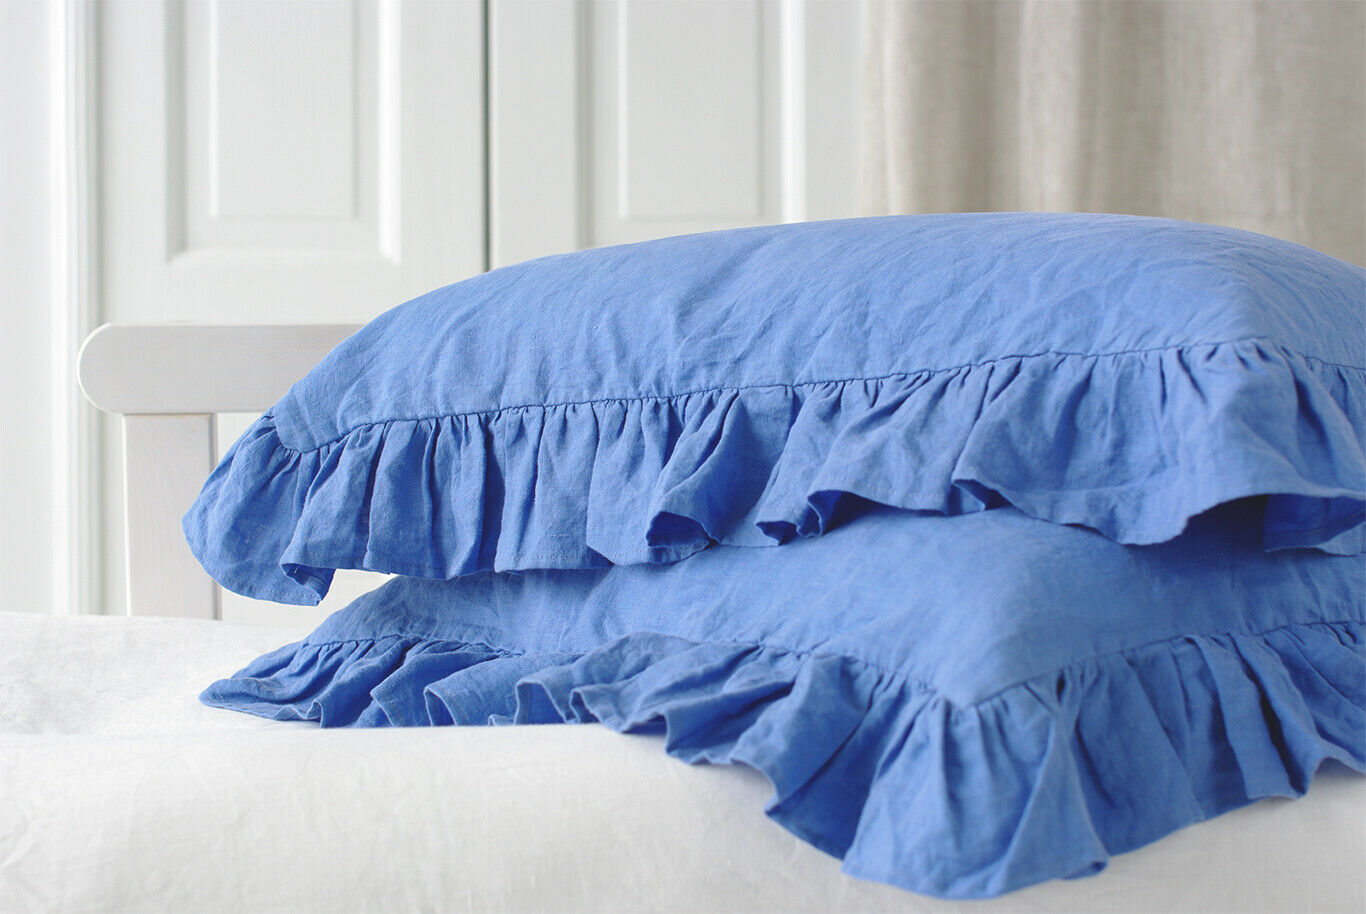 Set of 2 Dusk Blau All-Sided Ruffle Stonewashed Linen Pillowcases